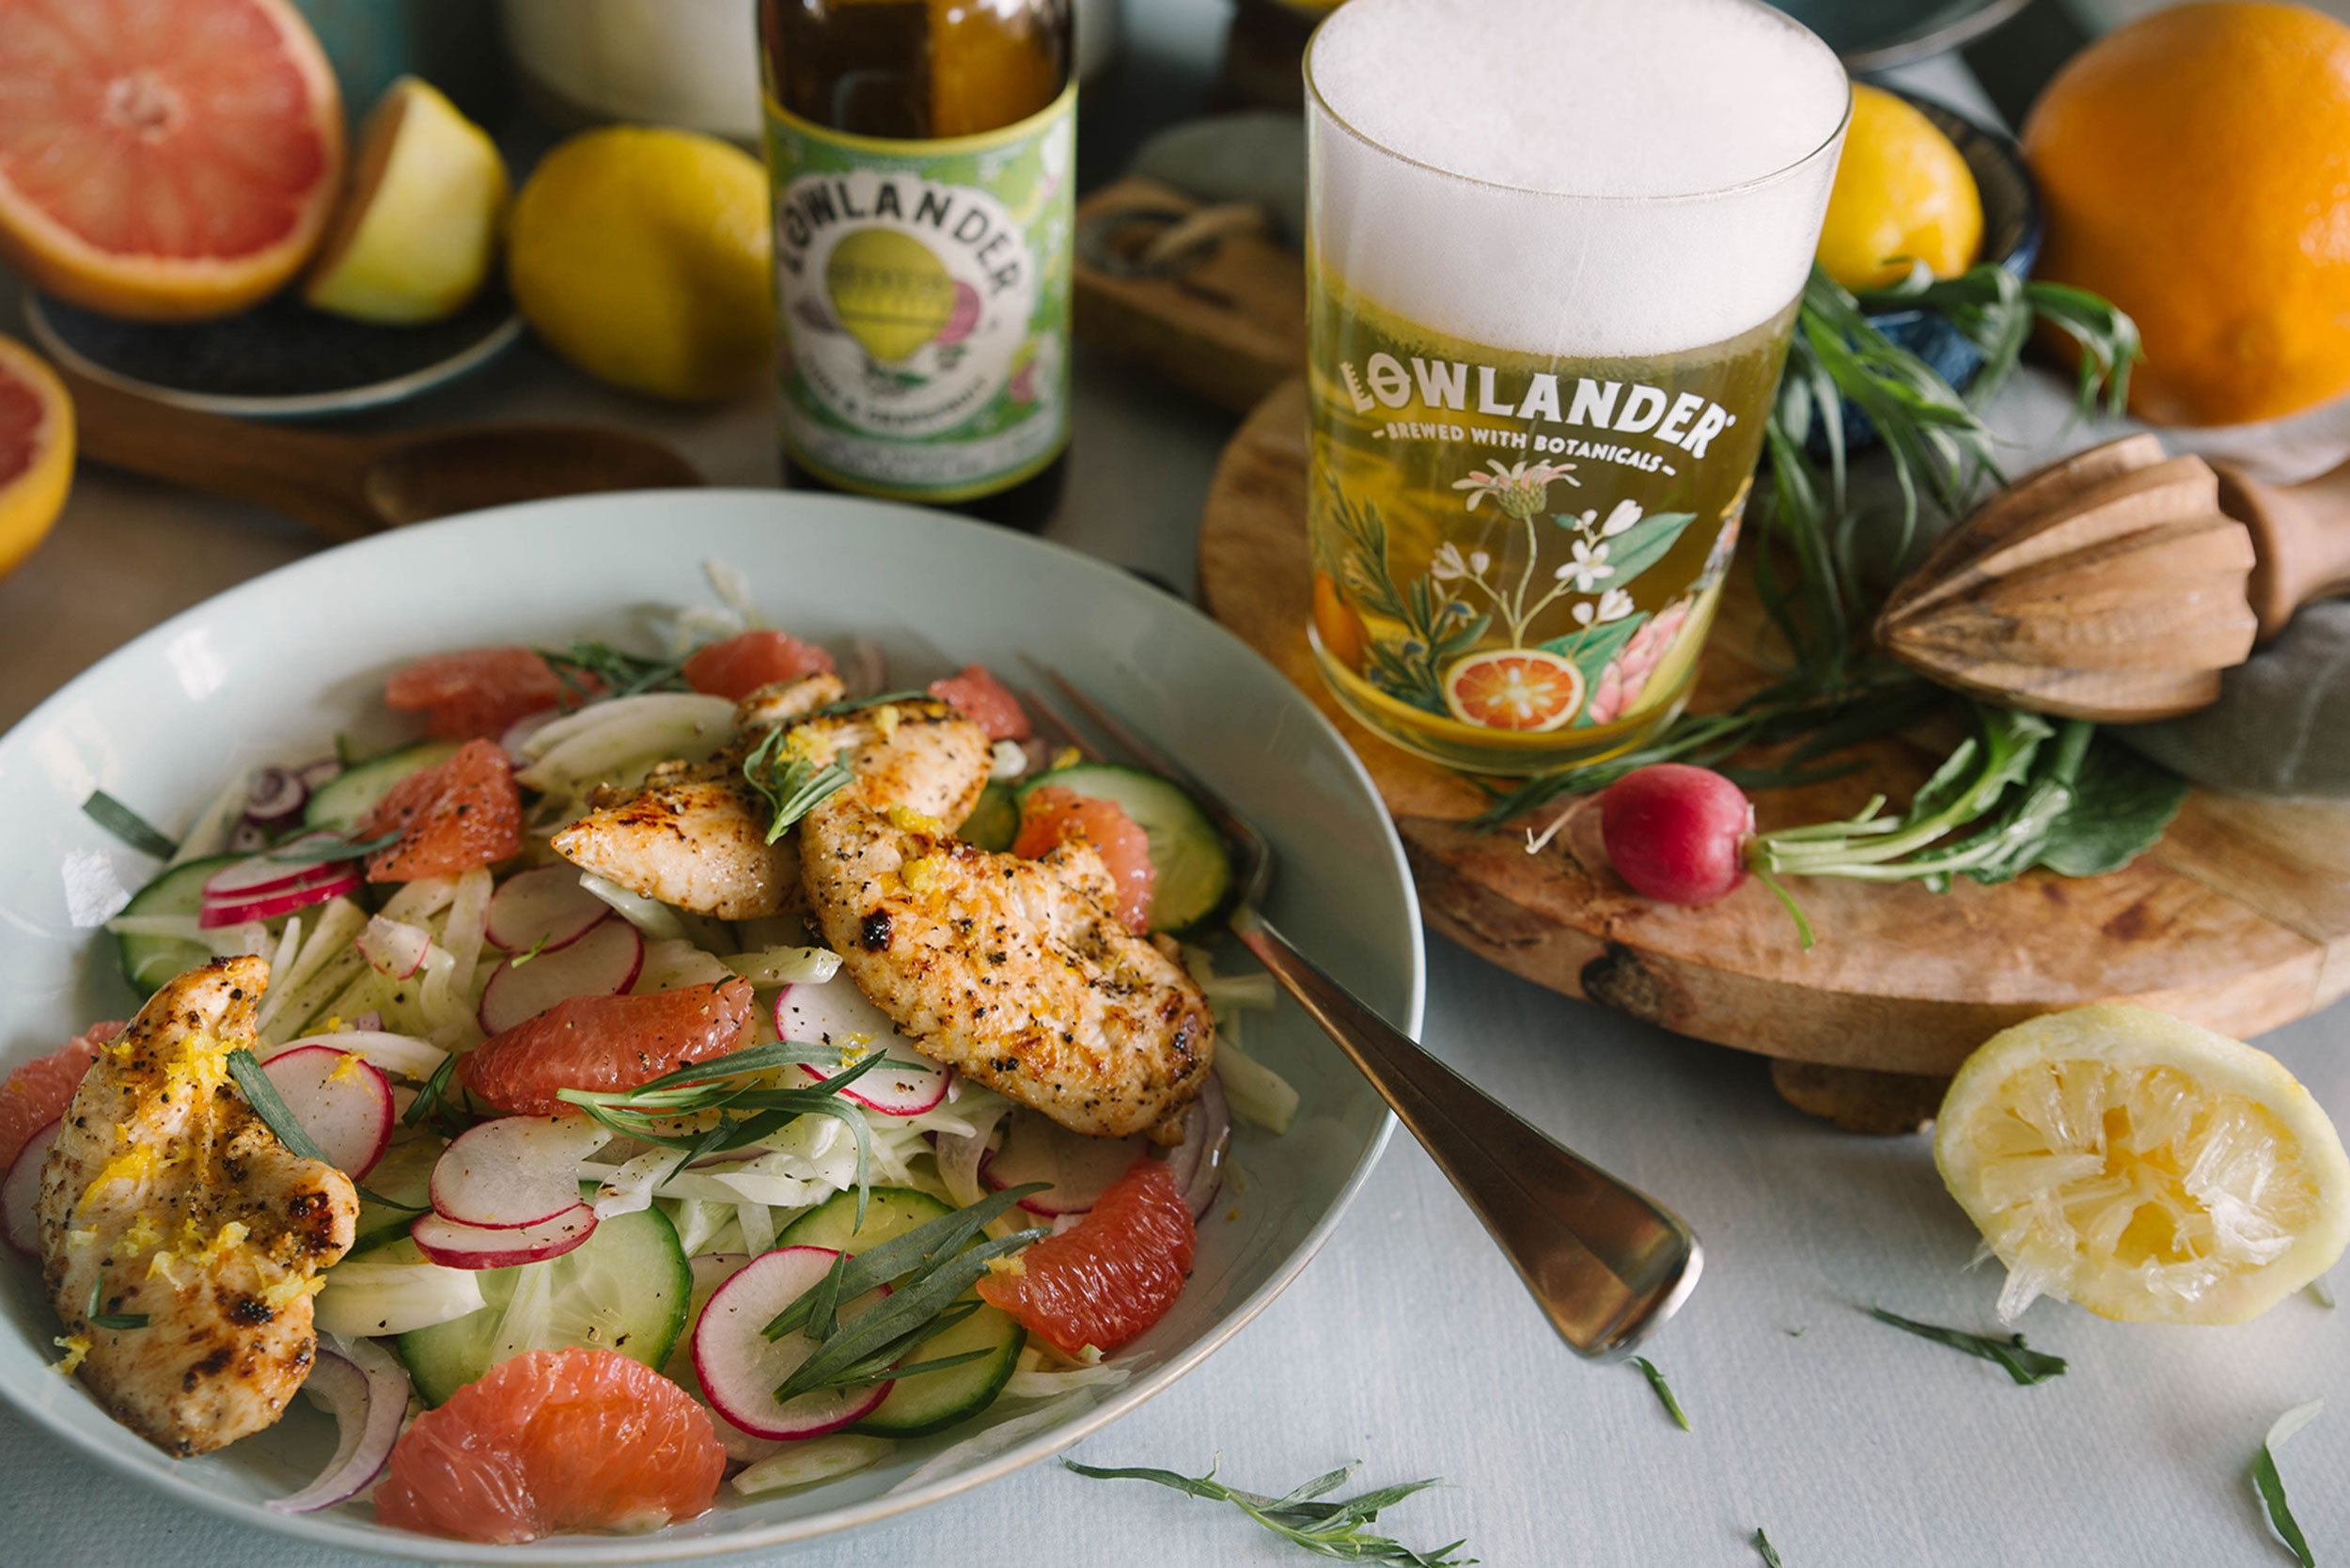 Lowlander Botanical Beers_Recipe_Foodpairing_Yuzu_Fennel Citrus Chicken Salad_landscape